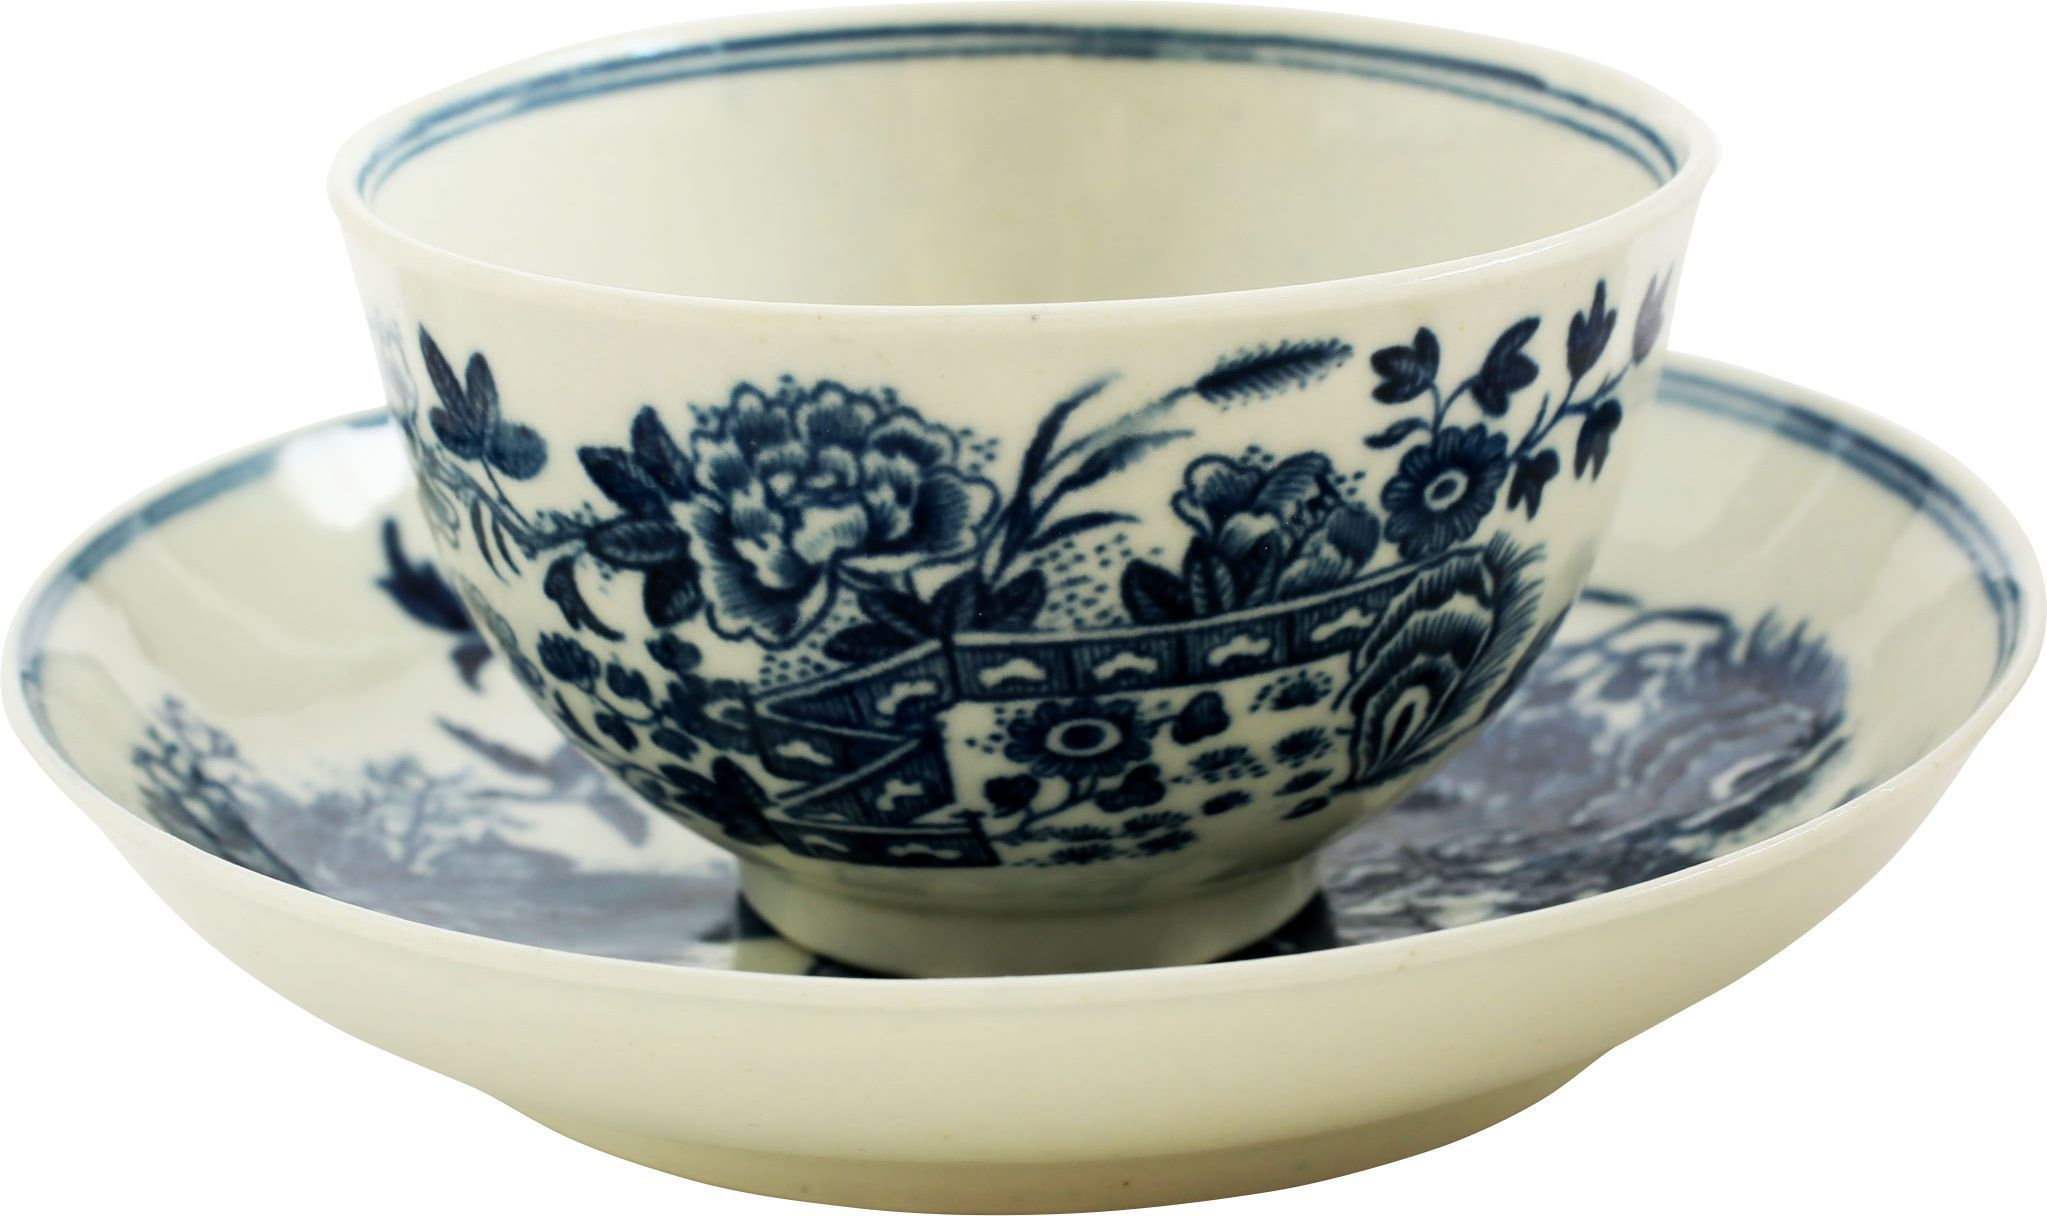 English Export Porcelain Tea Bowl And Under Bowl - Product